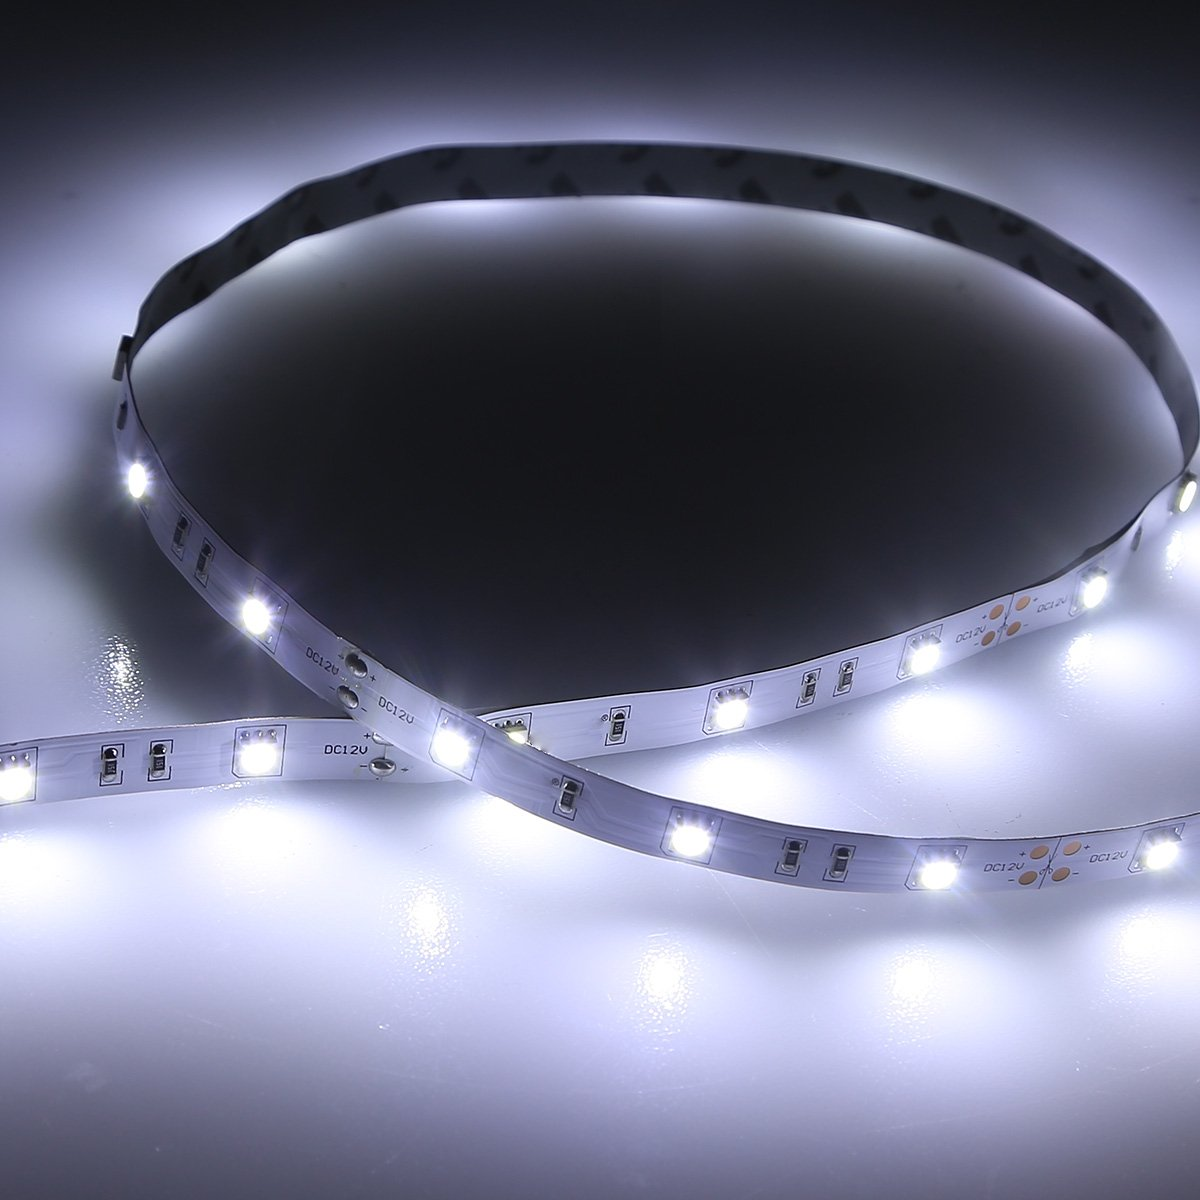 Daylight Strip Lights Amazon le 300 smd 5050 leds flexible strip lights 6000k amazon le 300 smd 5050 leds flexible strip lights 6000k daylight white non waterproof 12 volt indoor party christmas holiday festival celebration audiocablefo